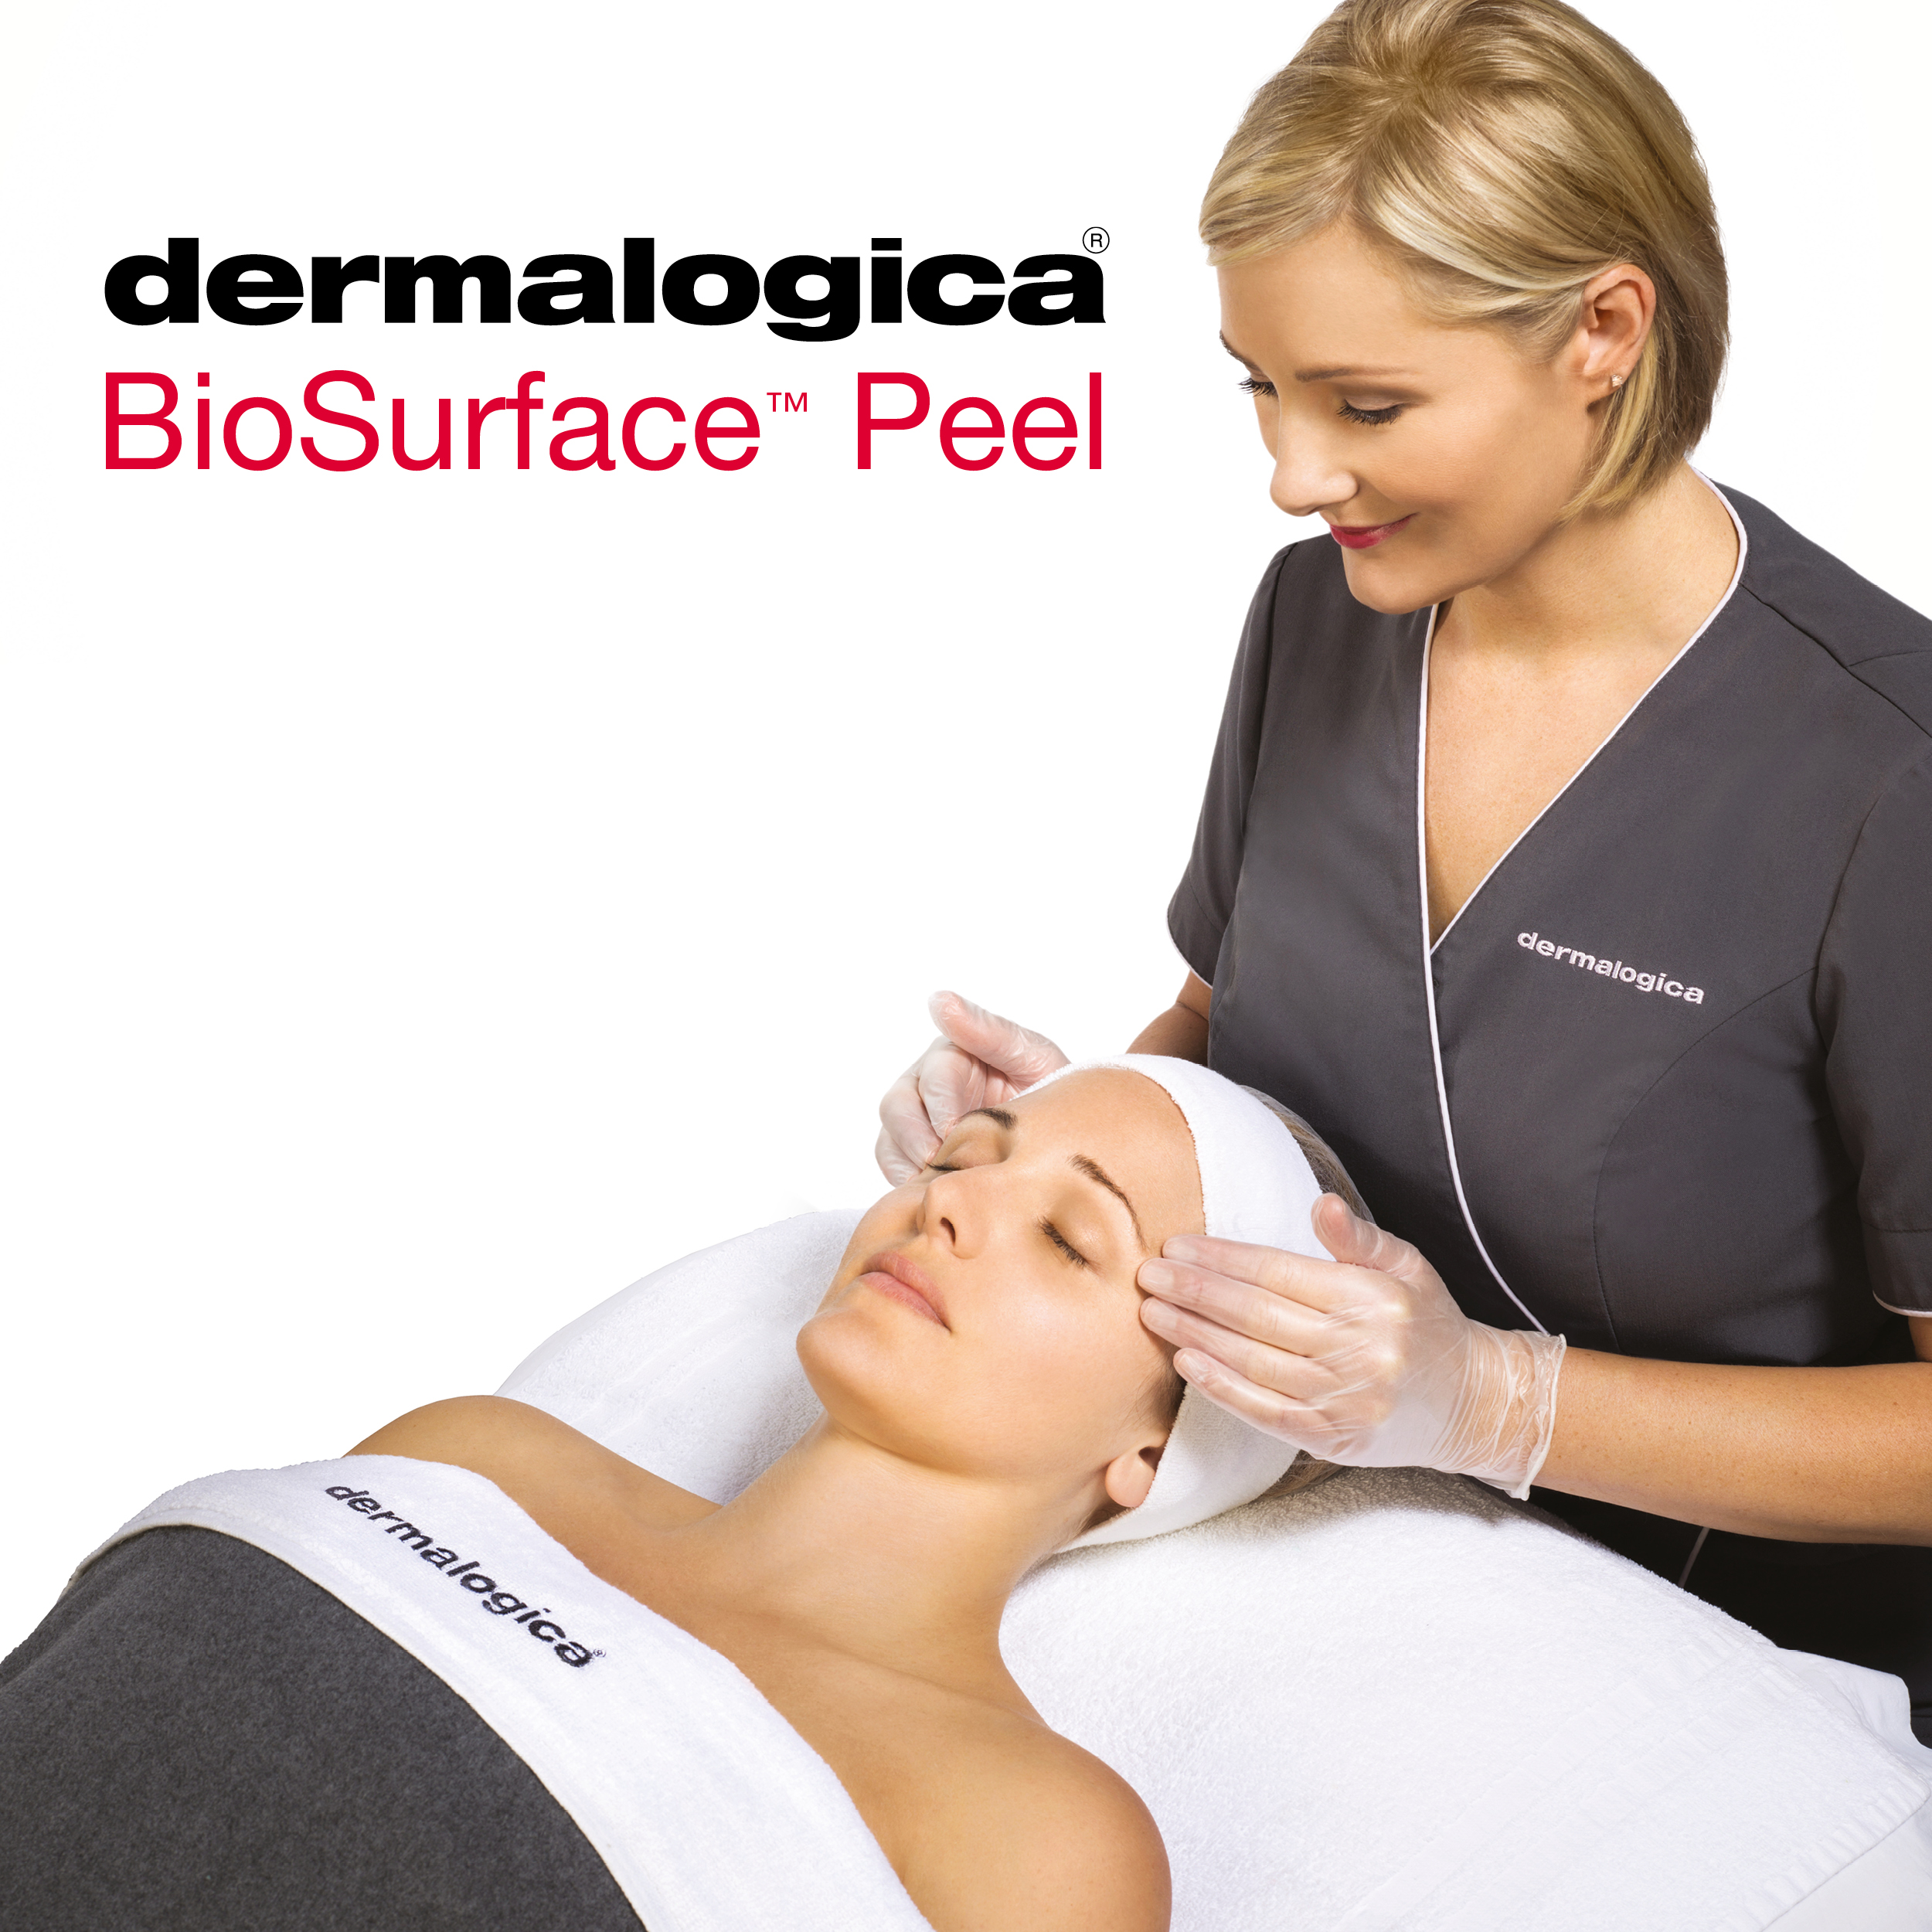 BioSurface Peel Social Media Image